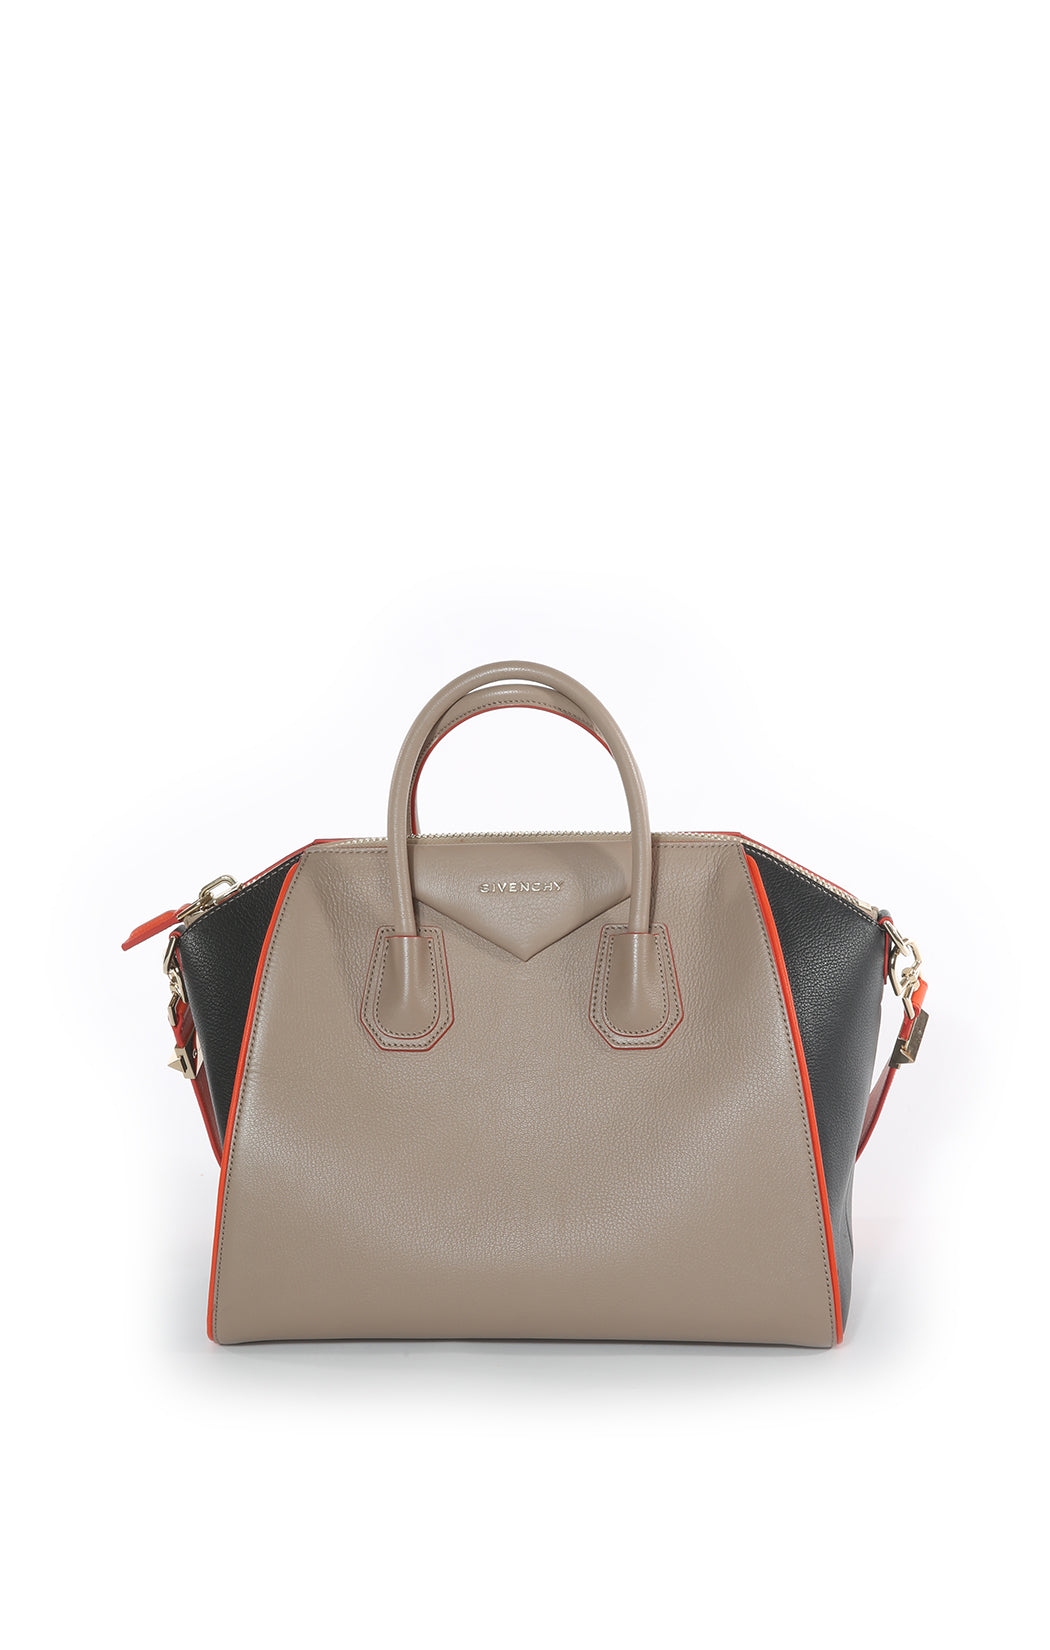 Front view of GIVENCHY Handbag Size: 15.5 in x 11.75 in x 8 in